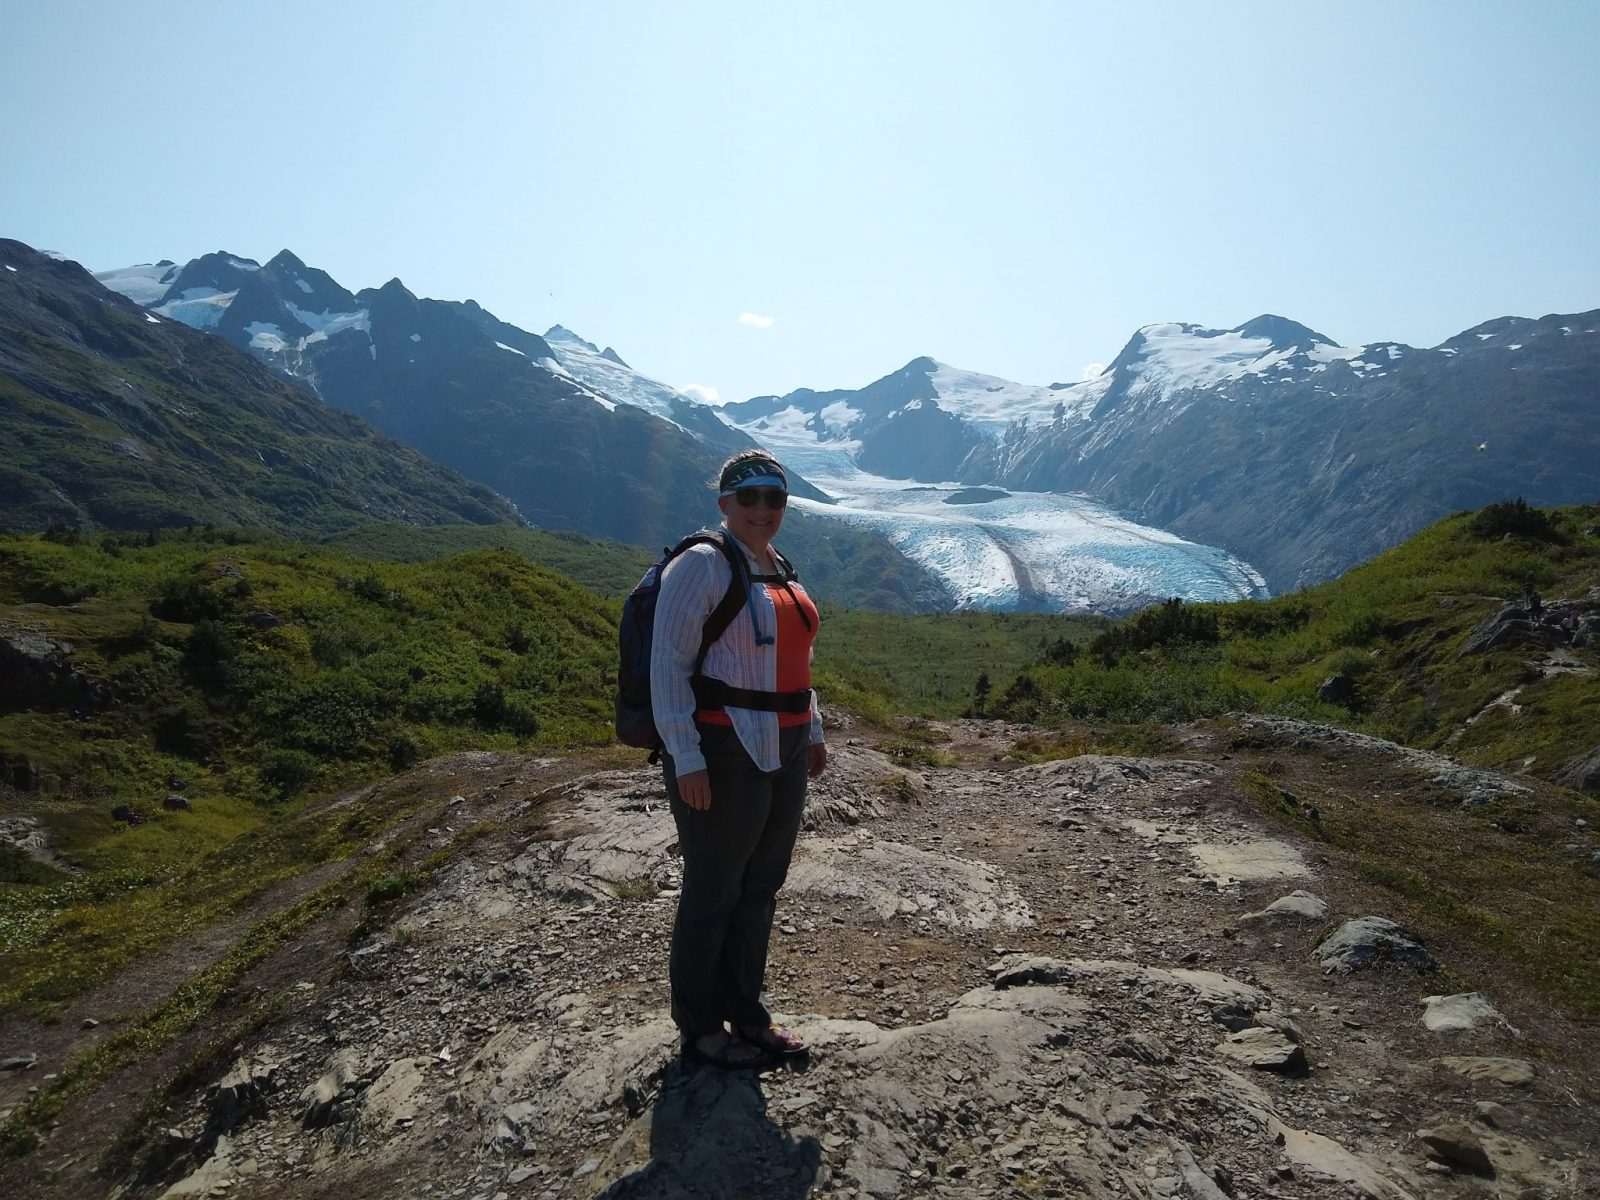 A hiker on a rocky overlook near a glacier. The hiker is wearing a lightweight button up shirt over a tank top and hiking pants and a backpack and sunglasses